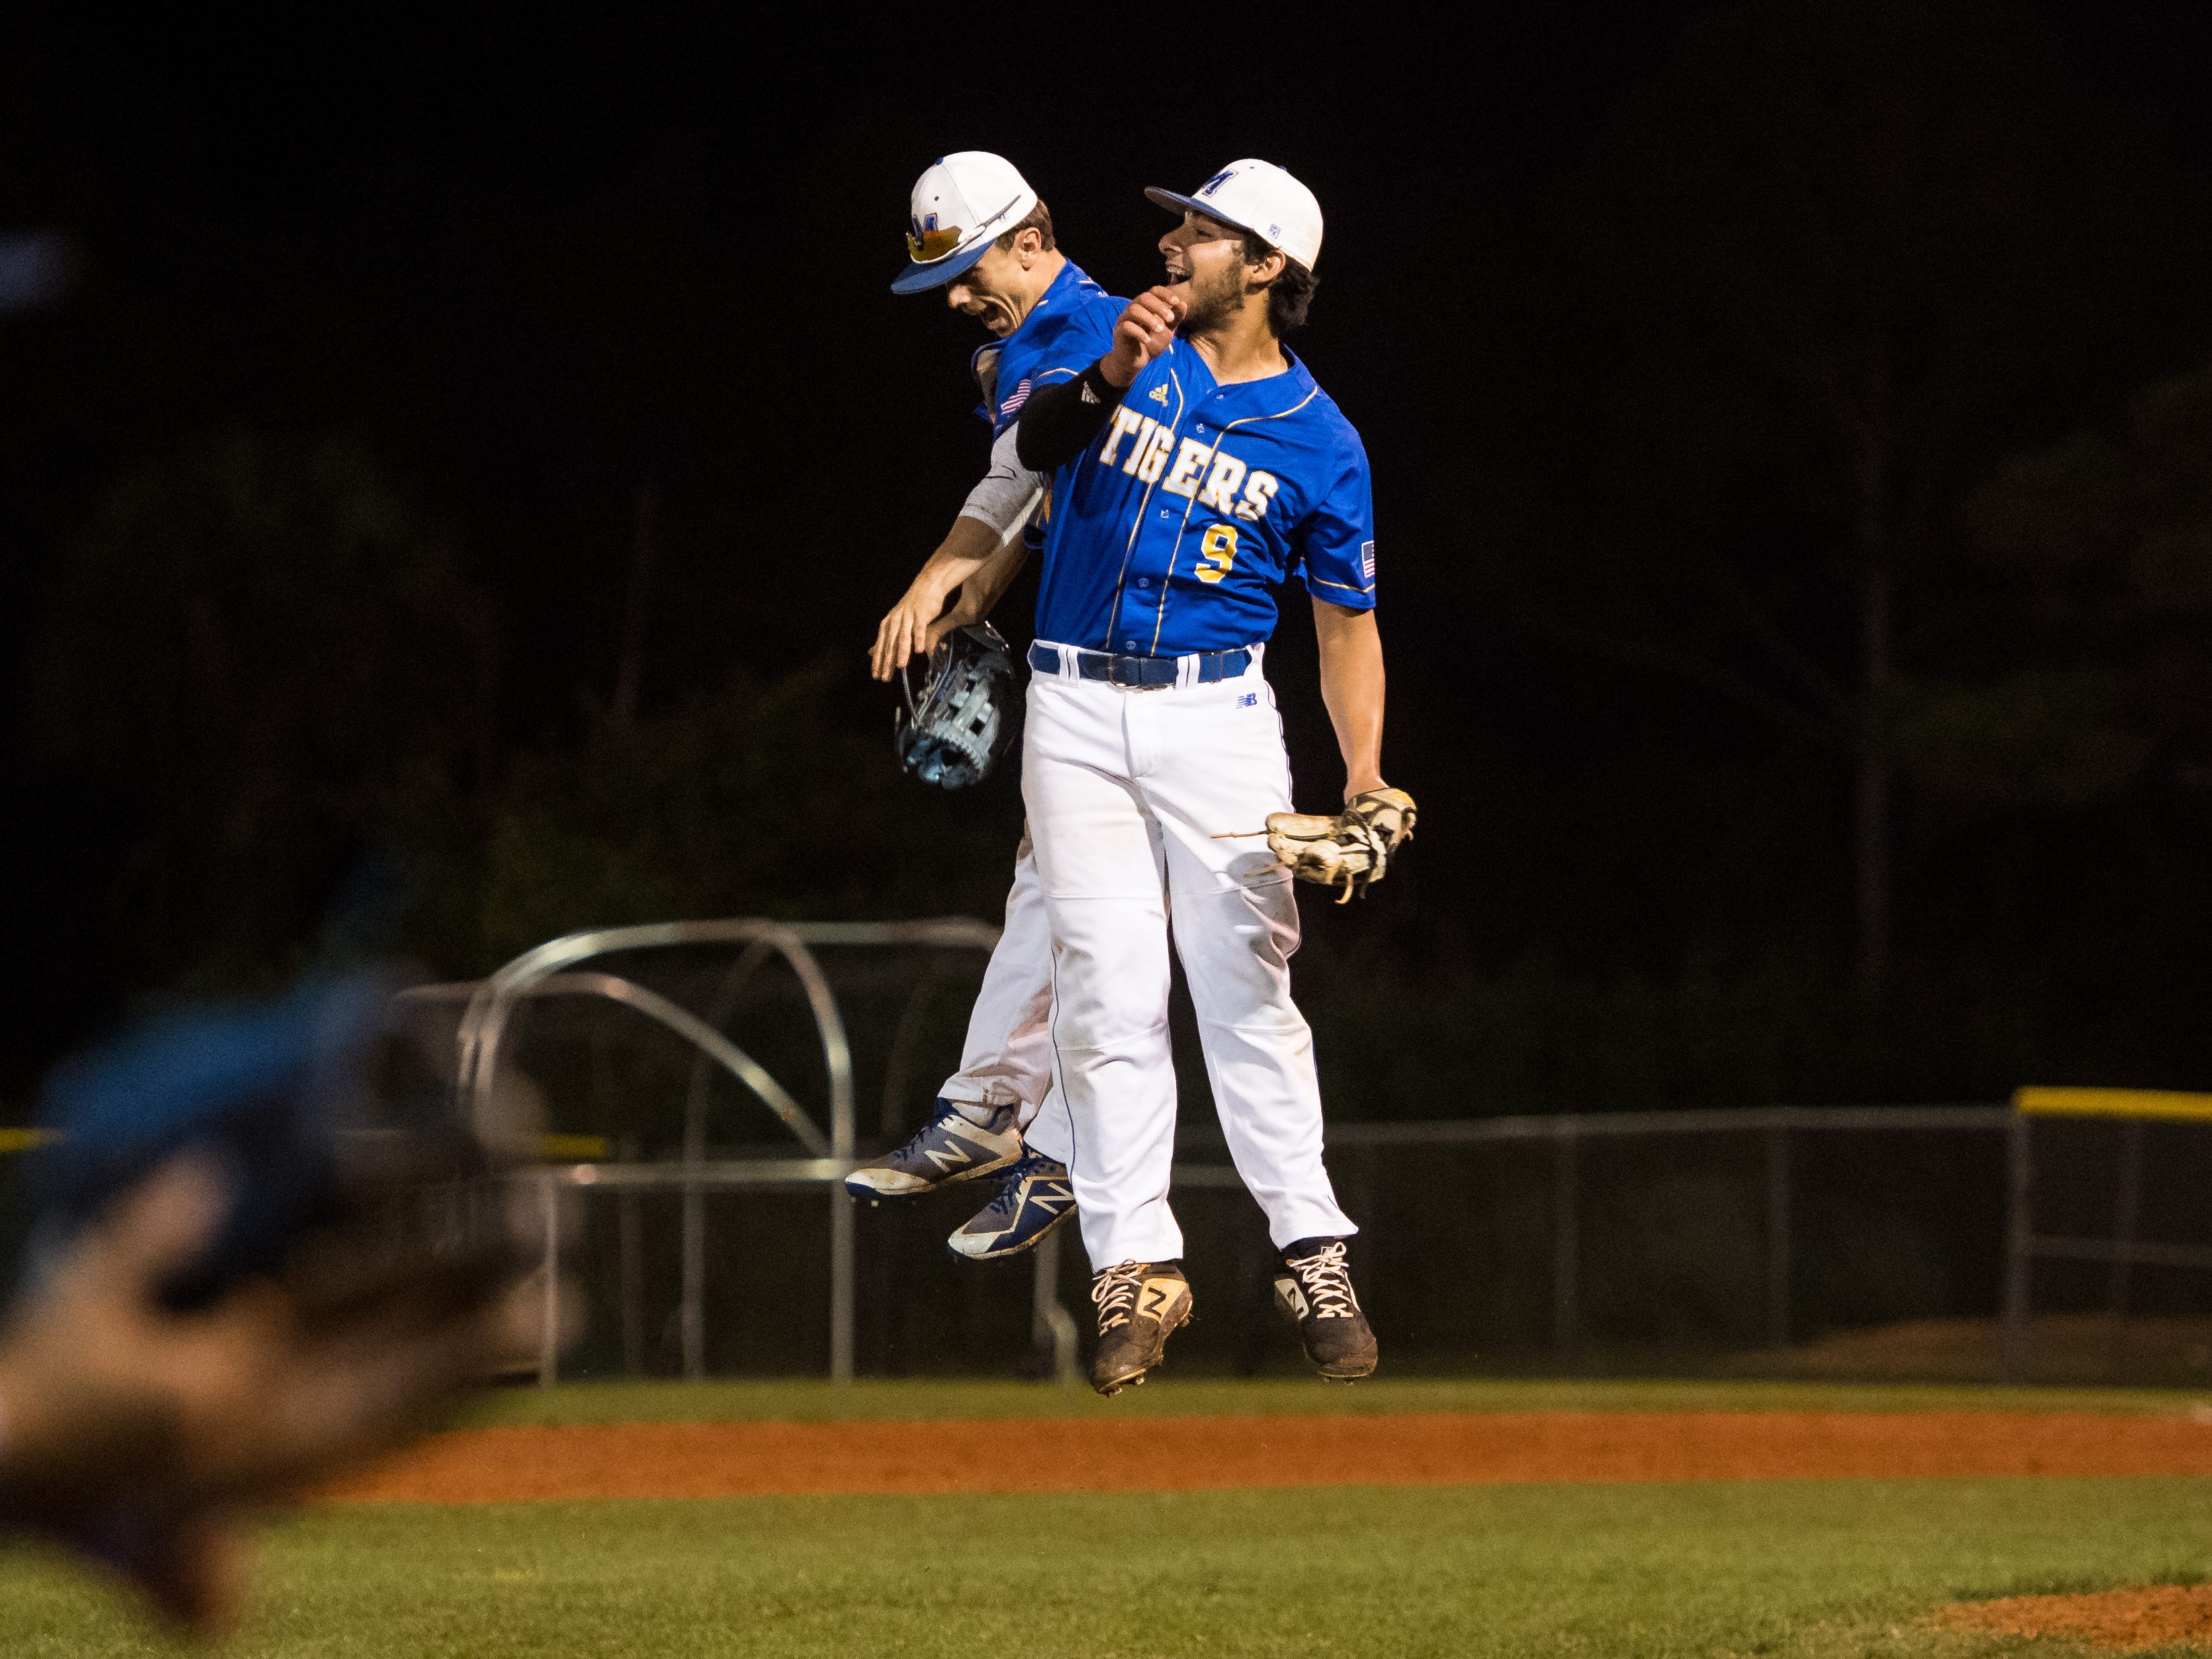 Martin County pitcher Tibur Rivero (right) celebrates with teammate Blake Pond after throwing the final strikeout to win 5-1 against South Fork during the 2019 Robbie Souza Classic high school baseball game Friday, March 22, 2019, at South Fork High School in Tropical Farms.